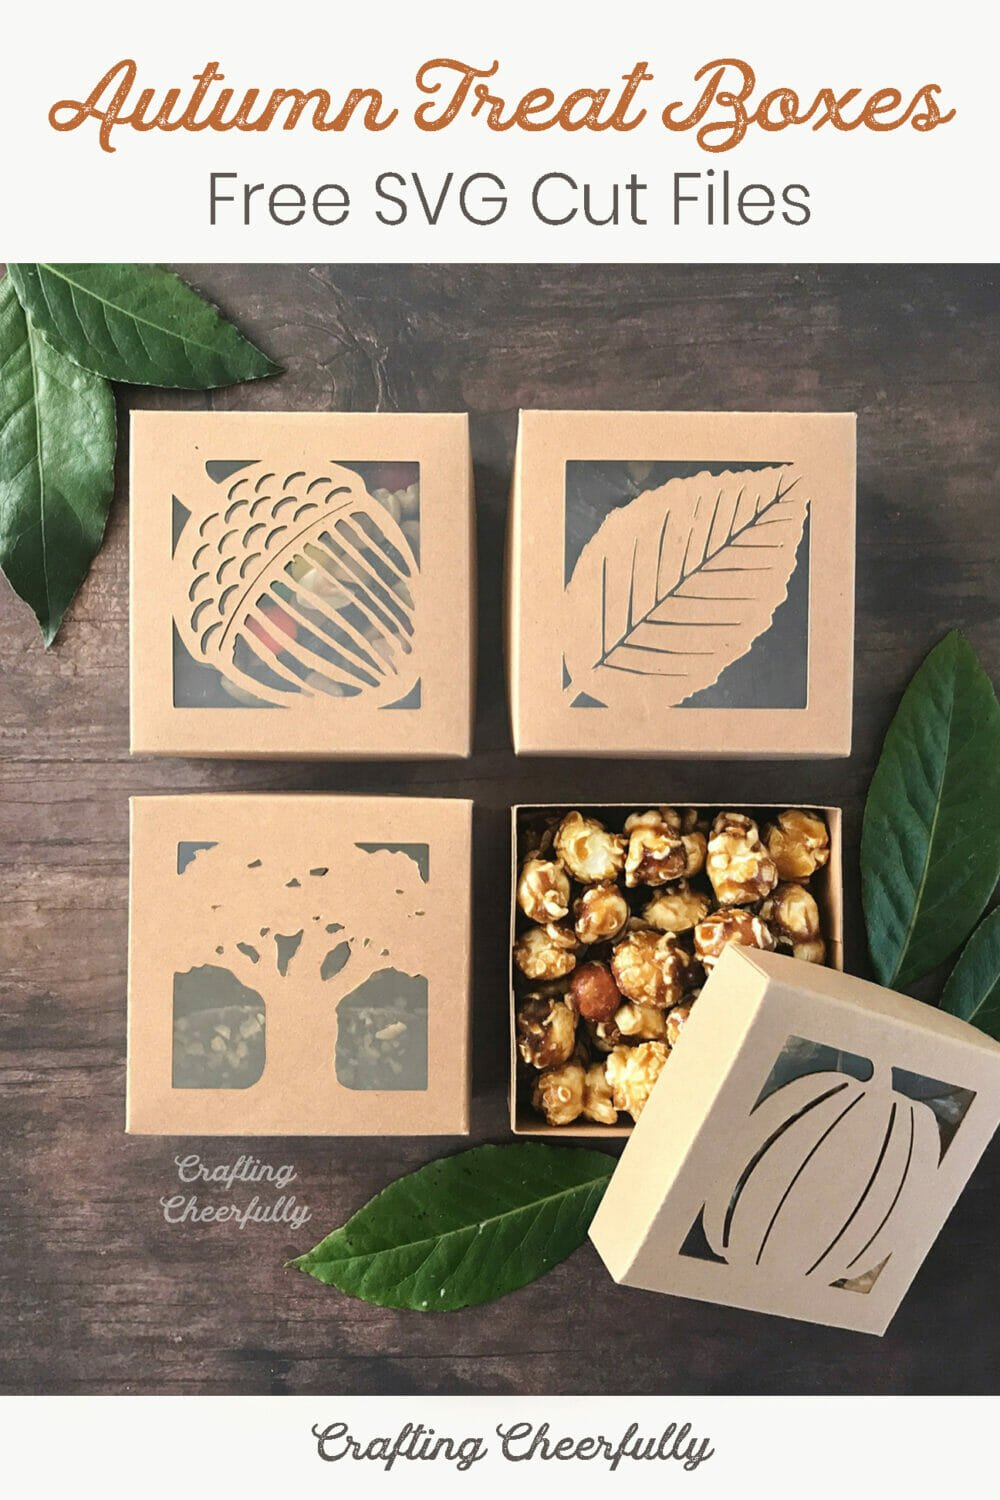 Autumn treat boxes featuring leaves, acorns, trees and pumpkins.